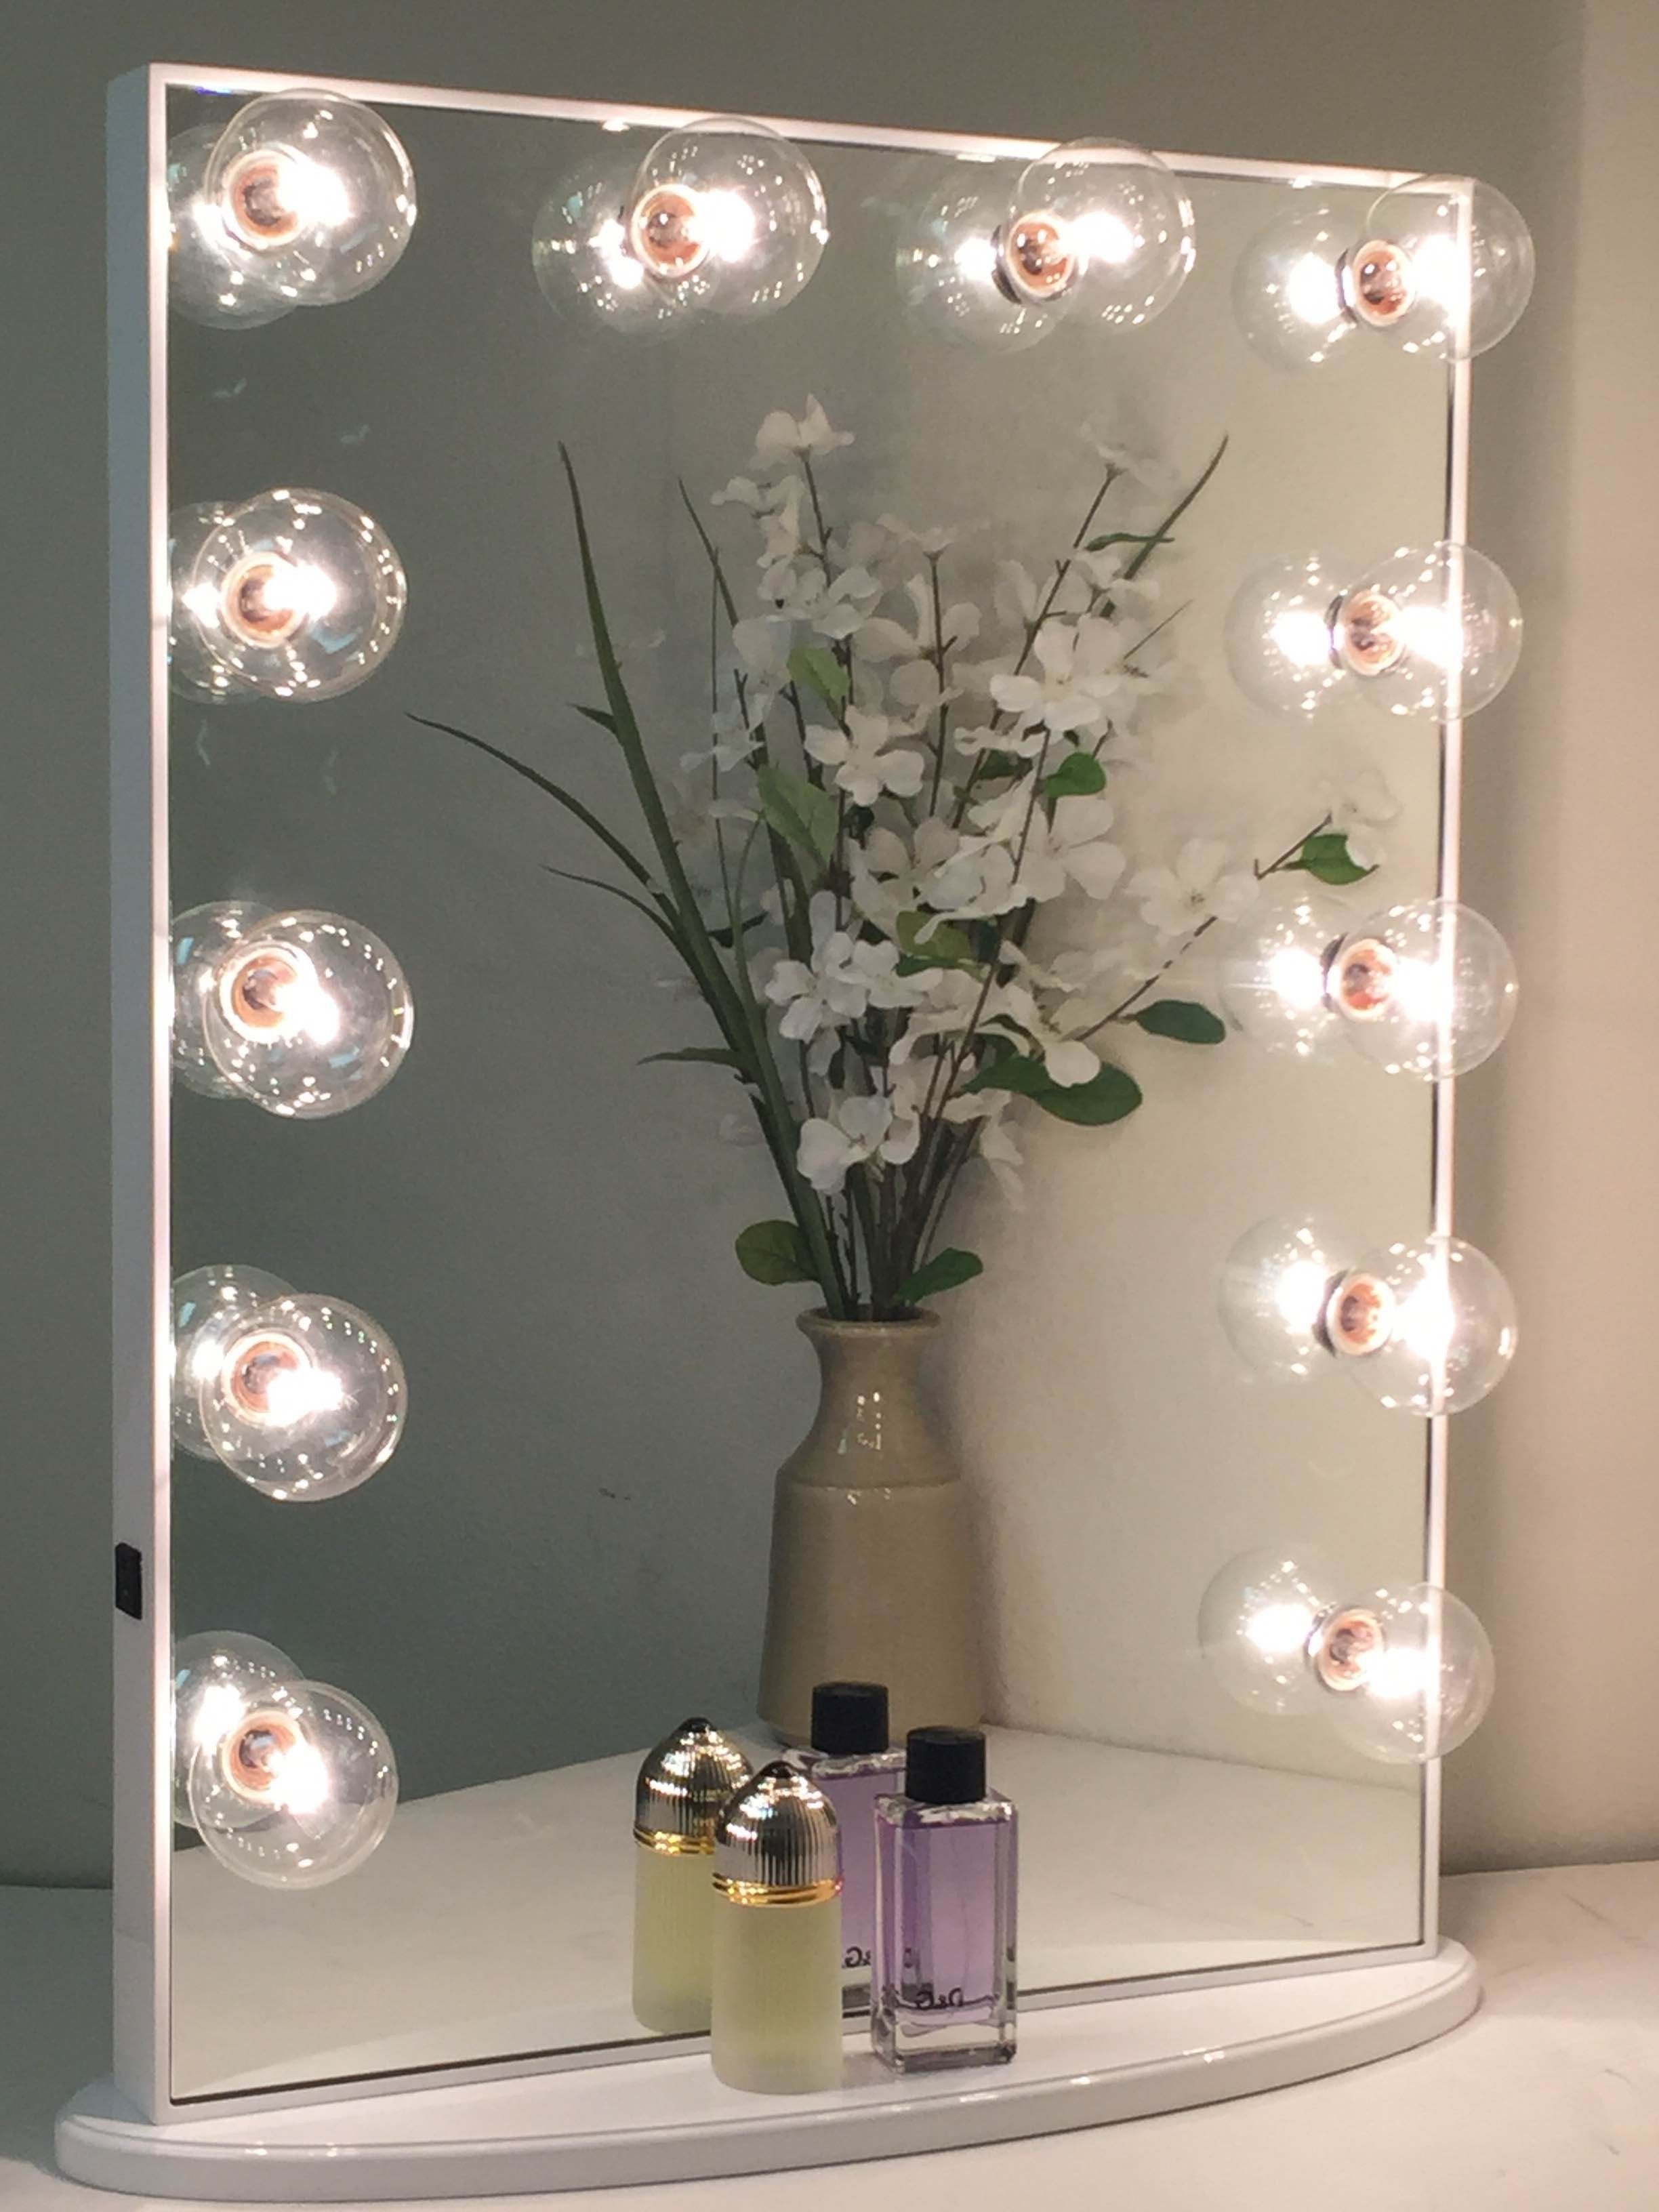 20 Vanity Mirror With Lights Ideas Diy Or Buy For Amour Makeup Room Diy Vanity Mirror Vanity Mirror Cheap Vanity Mirror